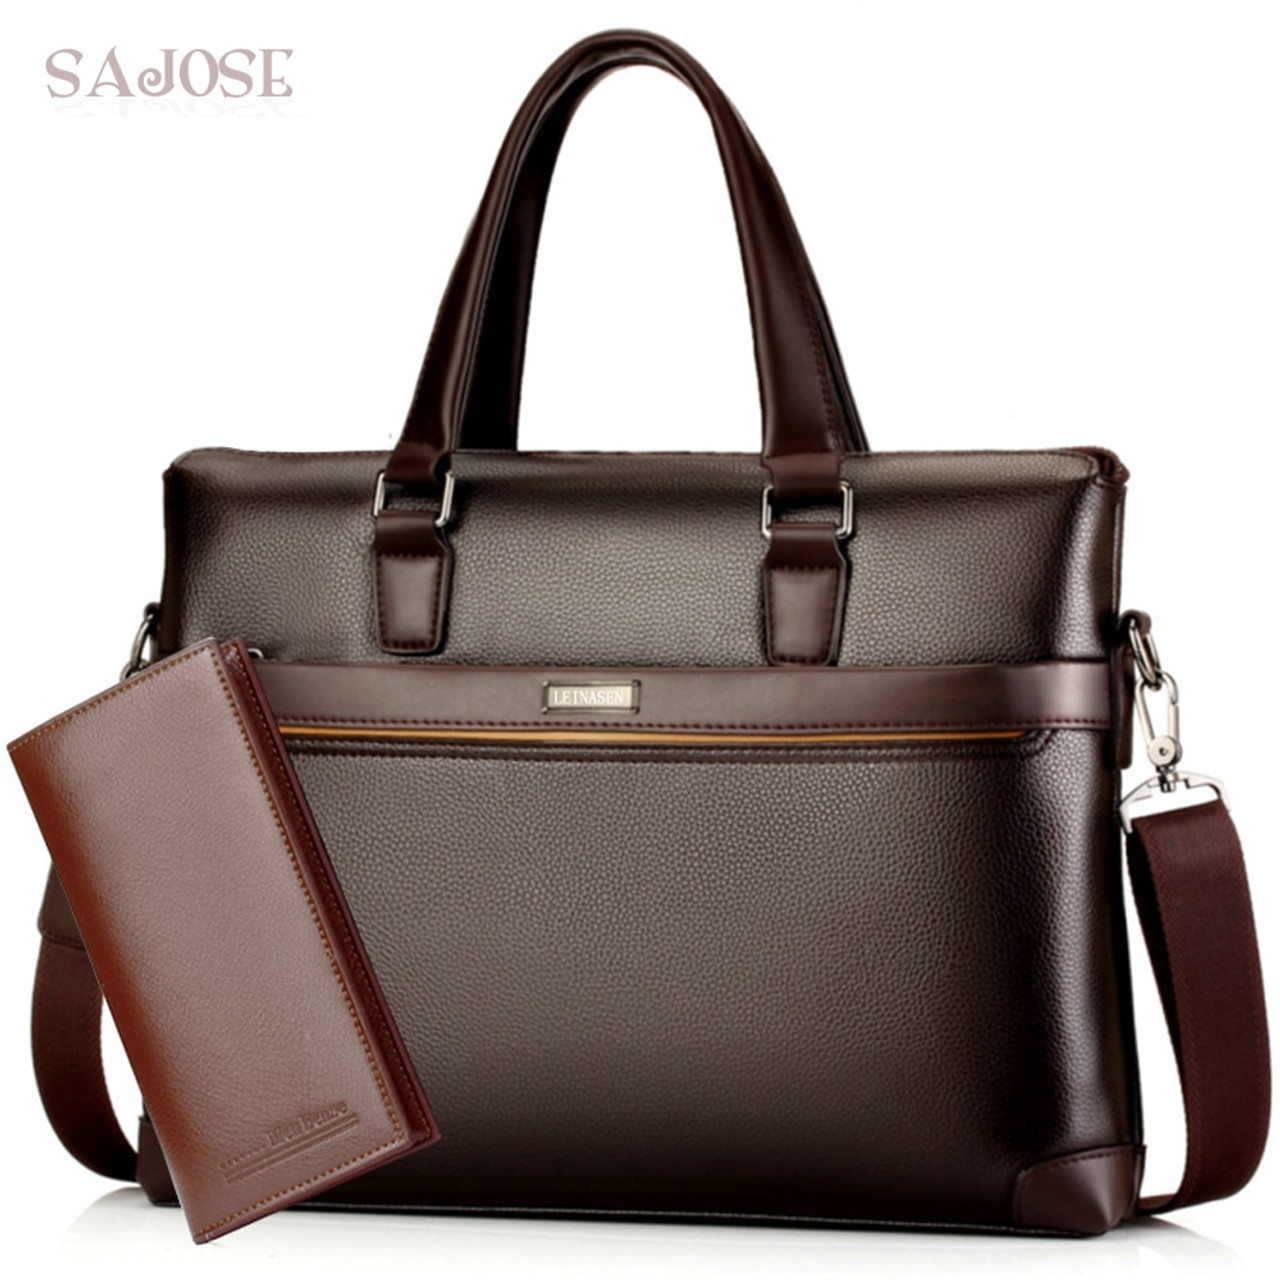 41212745fa Man s Leather Bag Business Men Bags Laptop Tote Briefcases Male Crossbody  Bags Shoulder Handbag High Quality ...